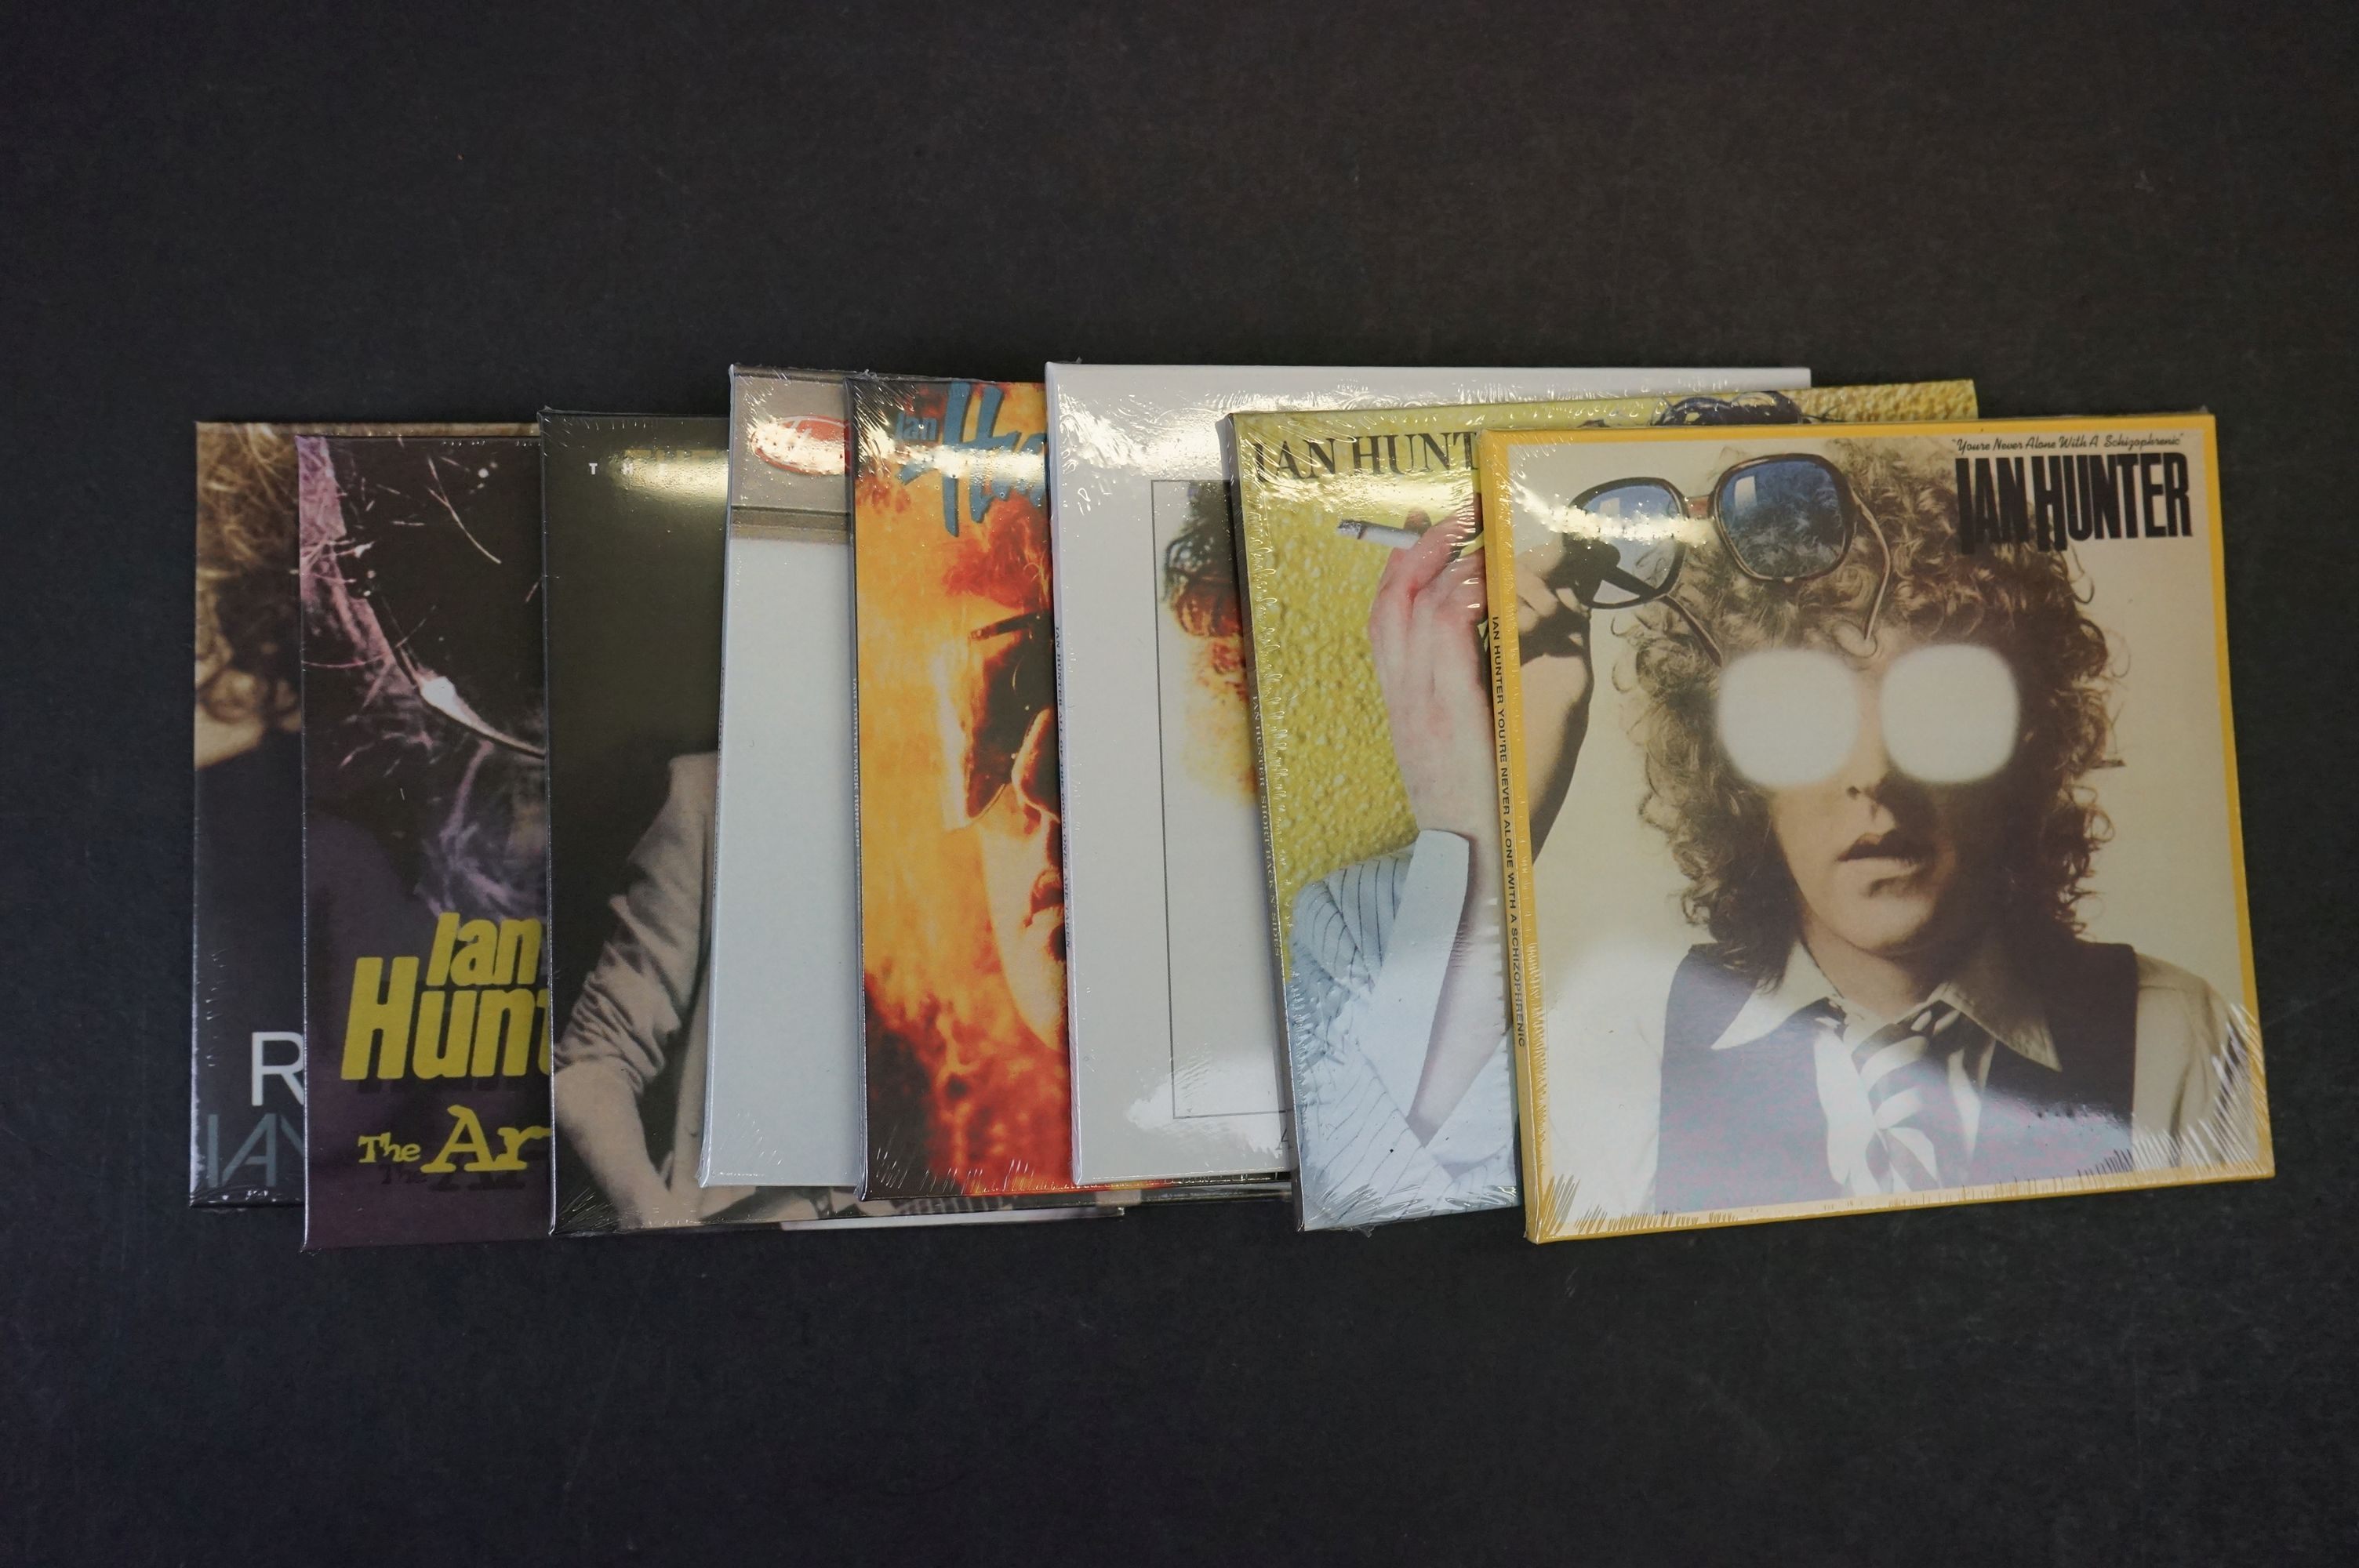 CD - Ian Hunter Stranded In Reality 30 Disc Box Set (2016) Proper Records, vg - Image 6 of 9